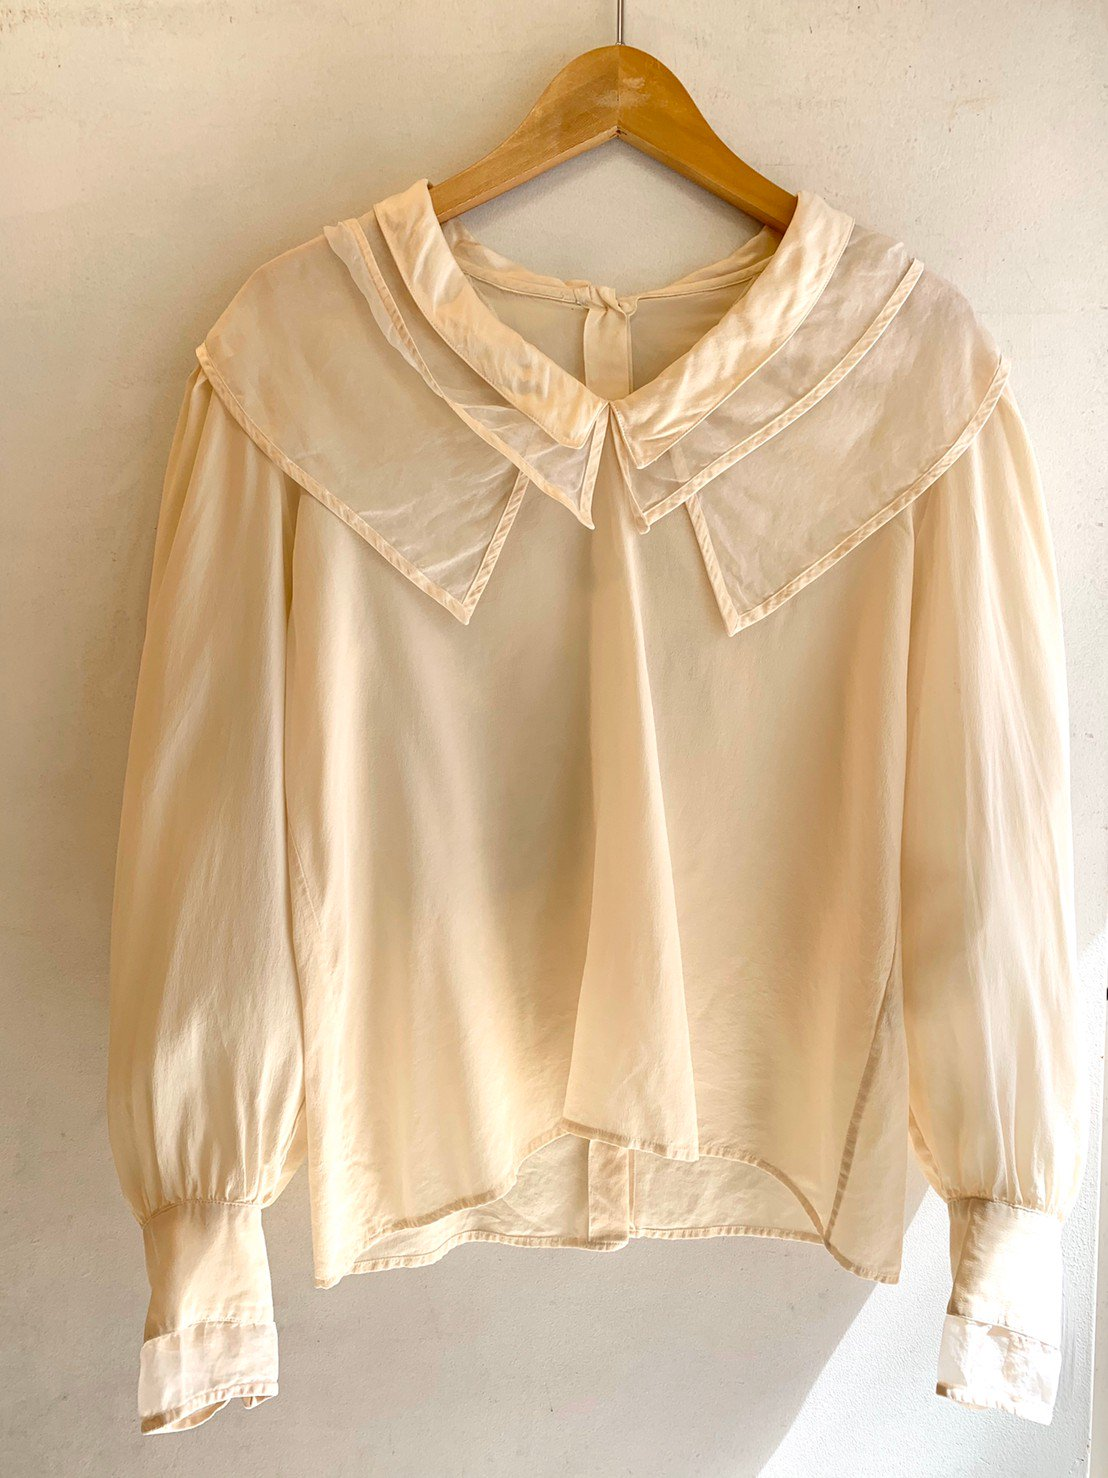 3.silk triple collar blouse